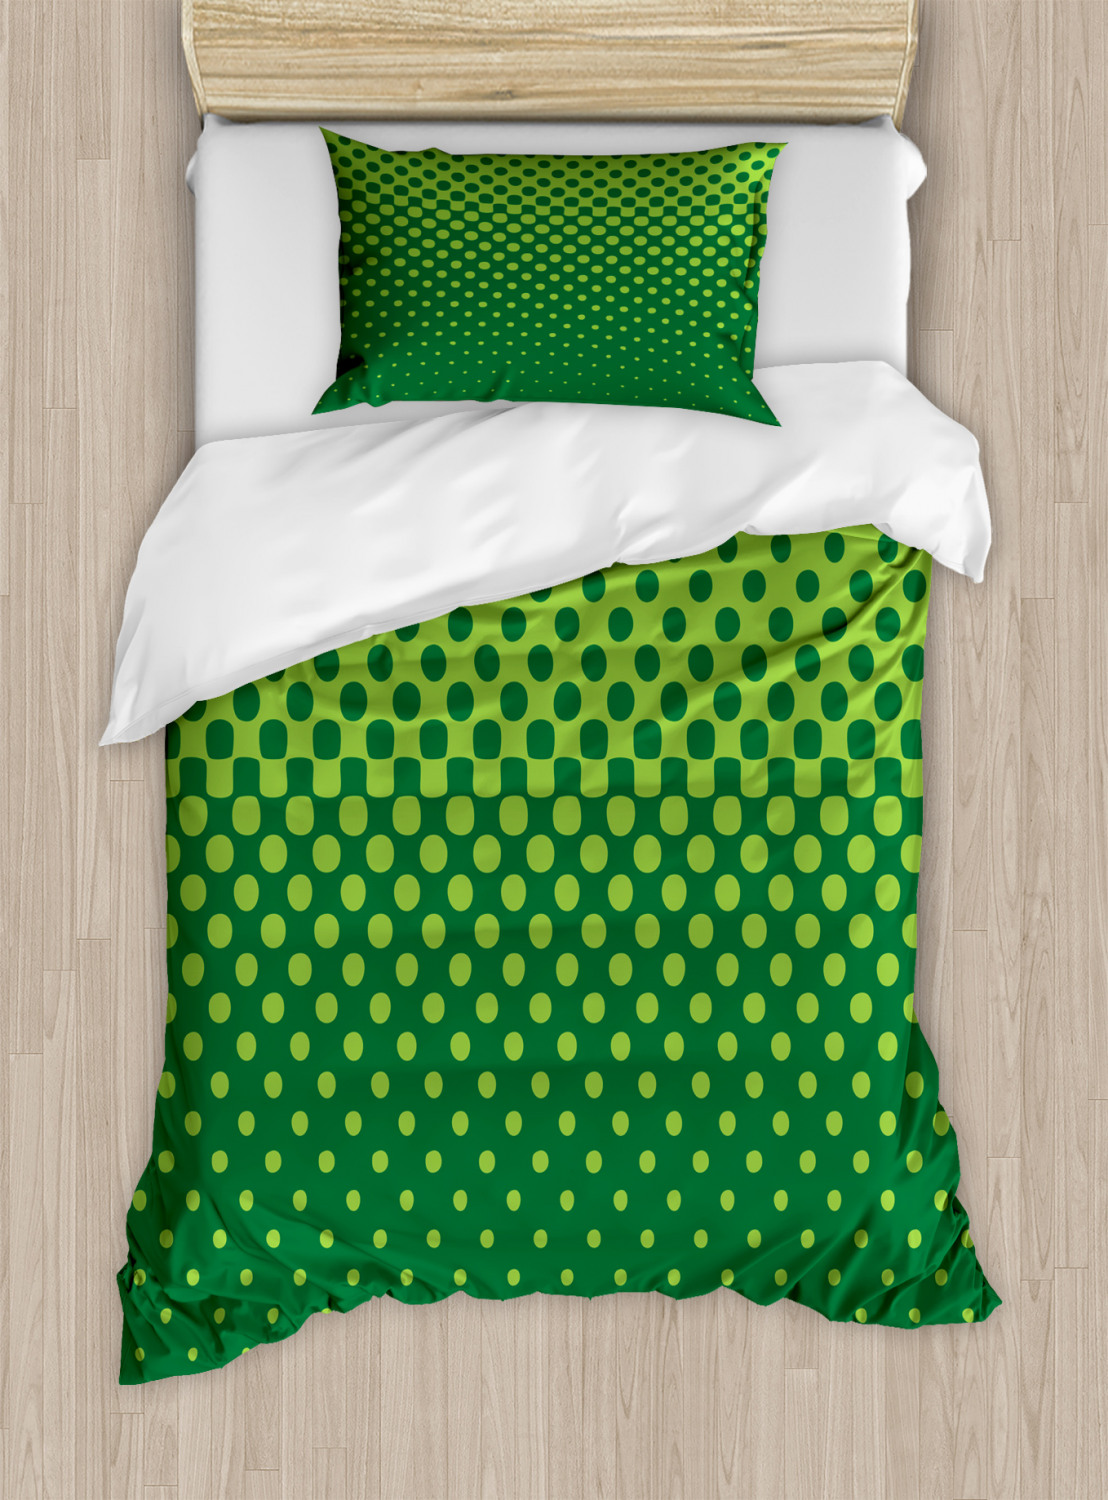 Abstract Green Duvet Cover Set Vertical Halftone Design With Dots And Spots Contemporary Art Decorative Bedding Set With Pillow Shams Forest Green Lime Green By Ambesonne Walmart Com Walmart Com